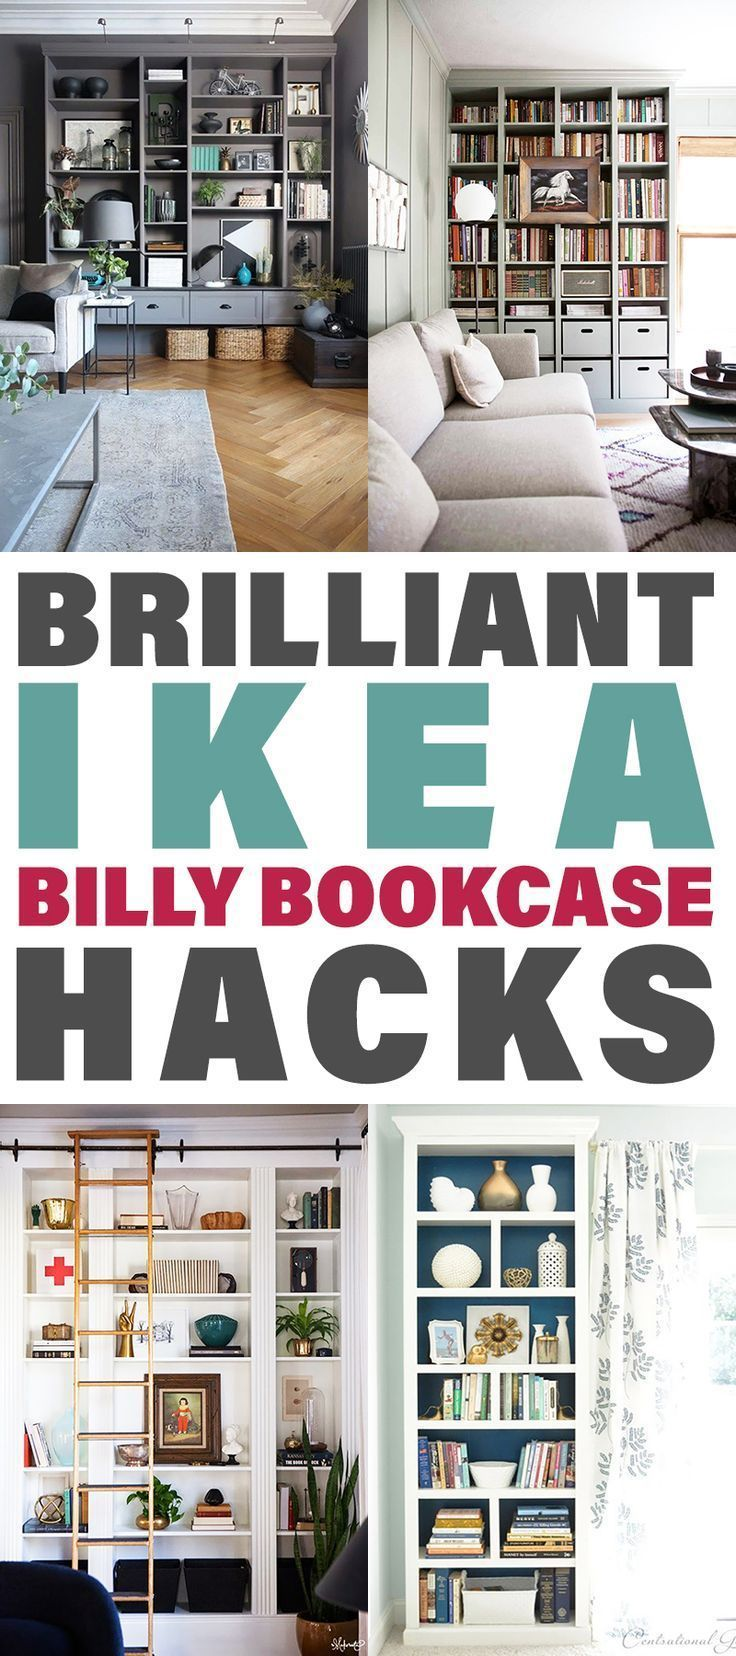 Brilliant IKEA Billy Bookcase Hacks. These DIY IKEA hacks staring the Billy Bookcase are going to amaze you.  You can get an expensive highend home decor look on a budget.  Complete tutorials and Diys are waiting for you.  Simply fabulous IKEA Hack Bookshelves ever. #ikeahack #ikea #billybookcaseikeahacks #BookcaseHacks #BookcaseIKEAhacks